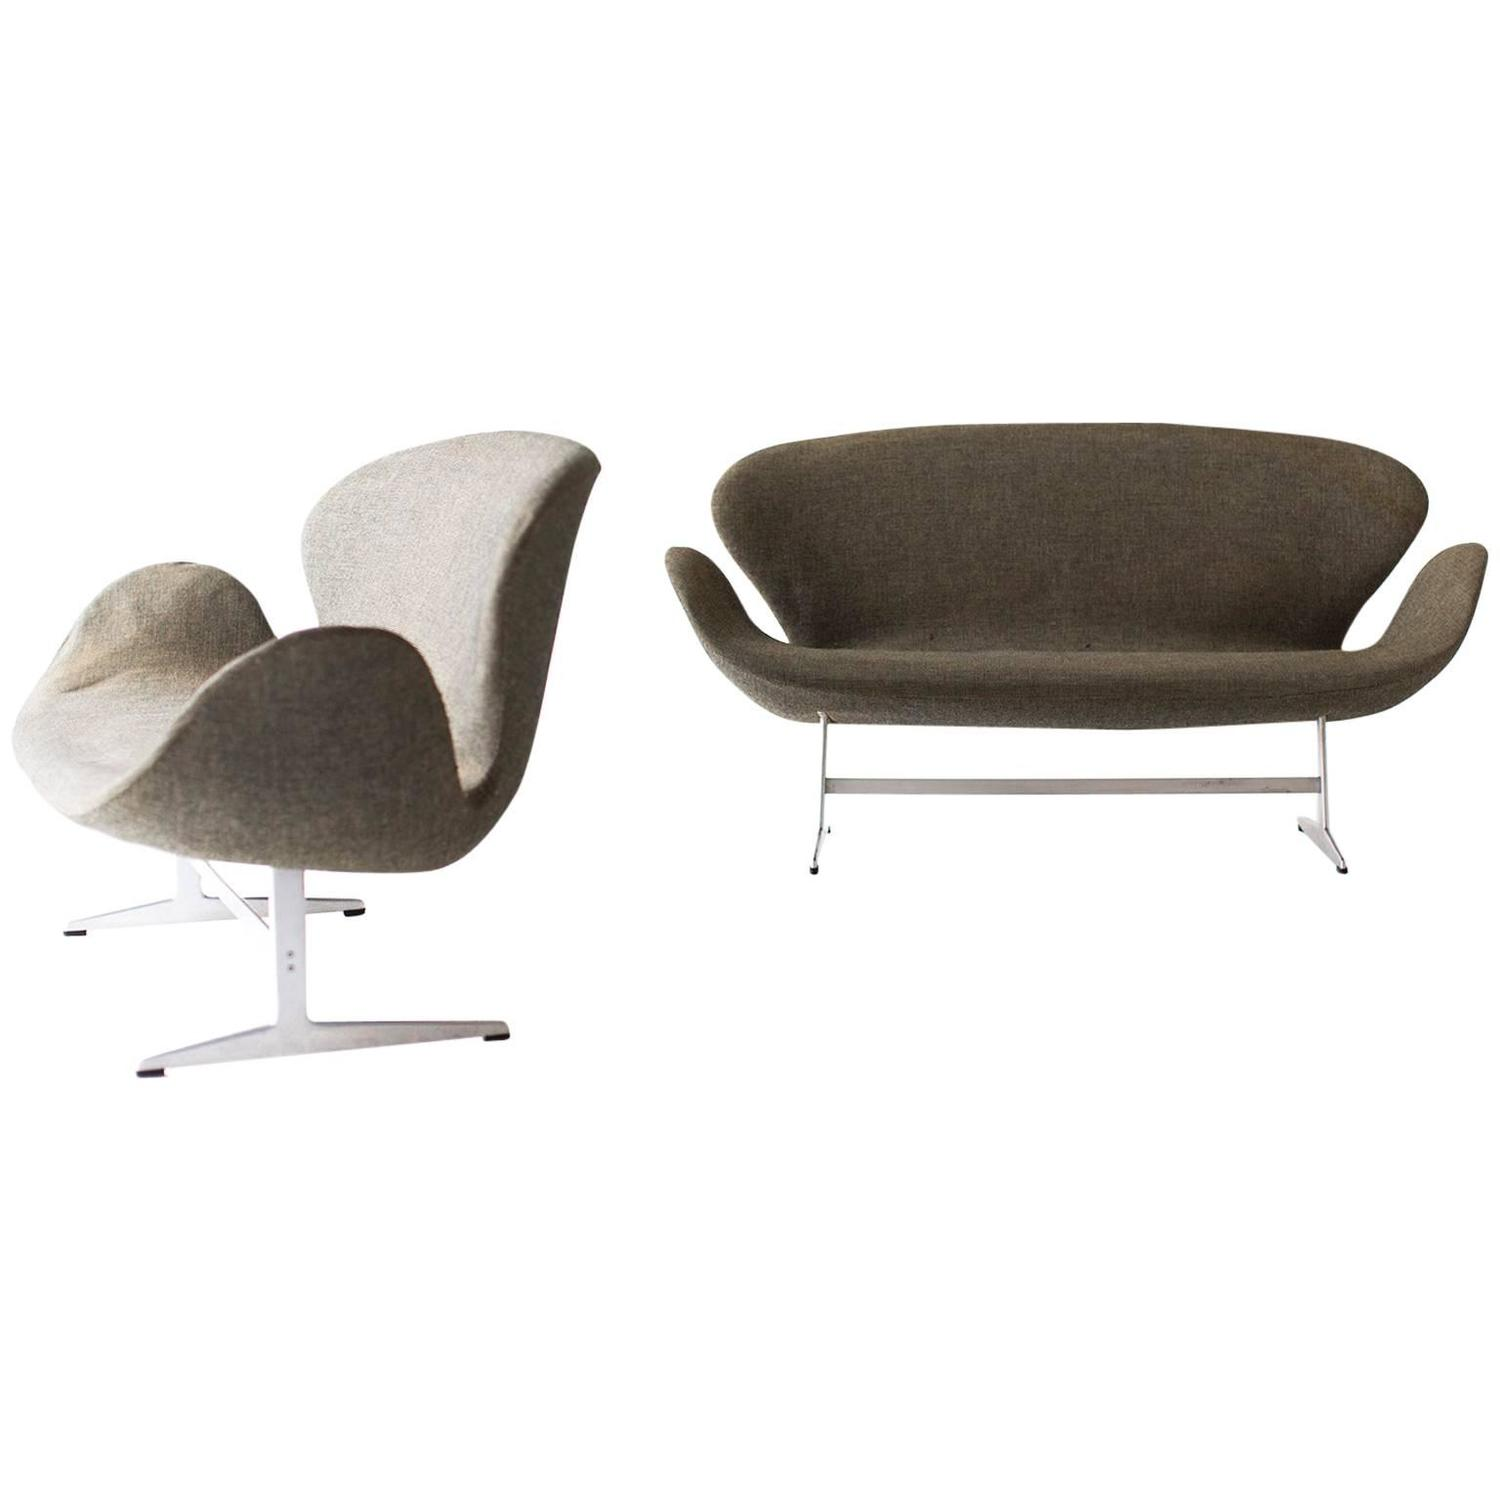 Swan sofa arne jacobsen swan sofa for at 1stdibs thesofa - Fauteuil swan arne jacobsen ...